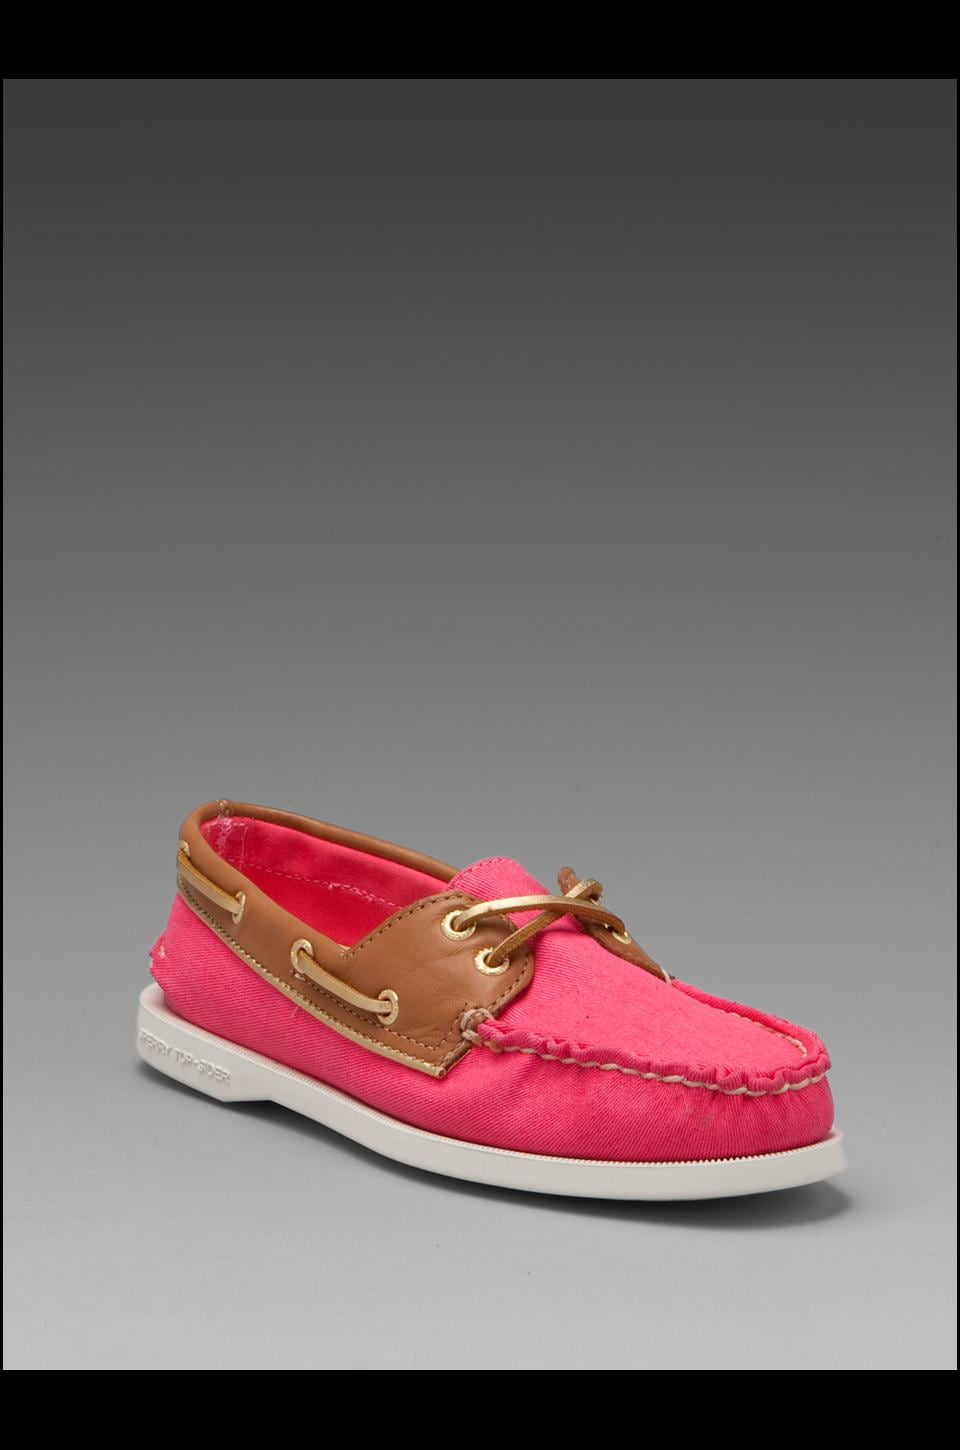 Sperry Top-Sider 2-Eye in Bright Pink Salt Wash